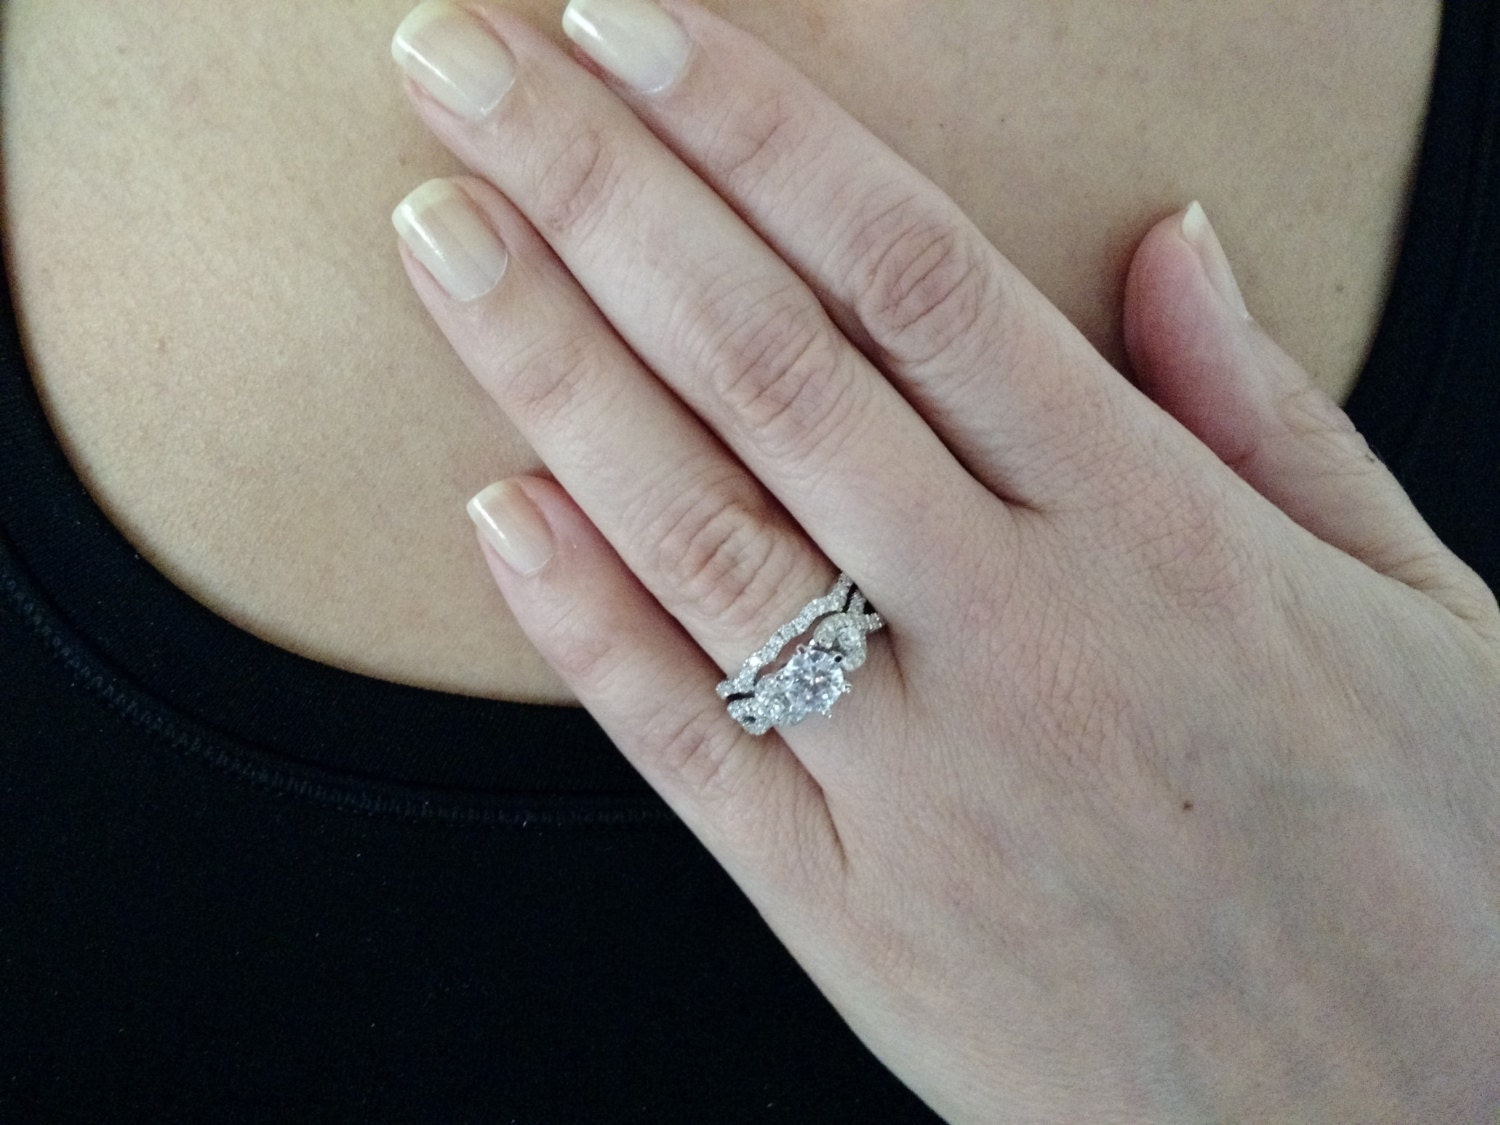 This is a unique diamond engagement and wedding band set featuring .78 carats of diamonds. The diamonds on the engagement ring are set in a pretty infinity shap